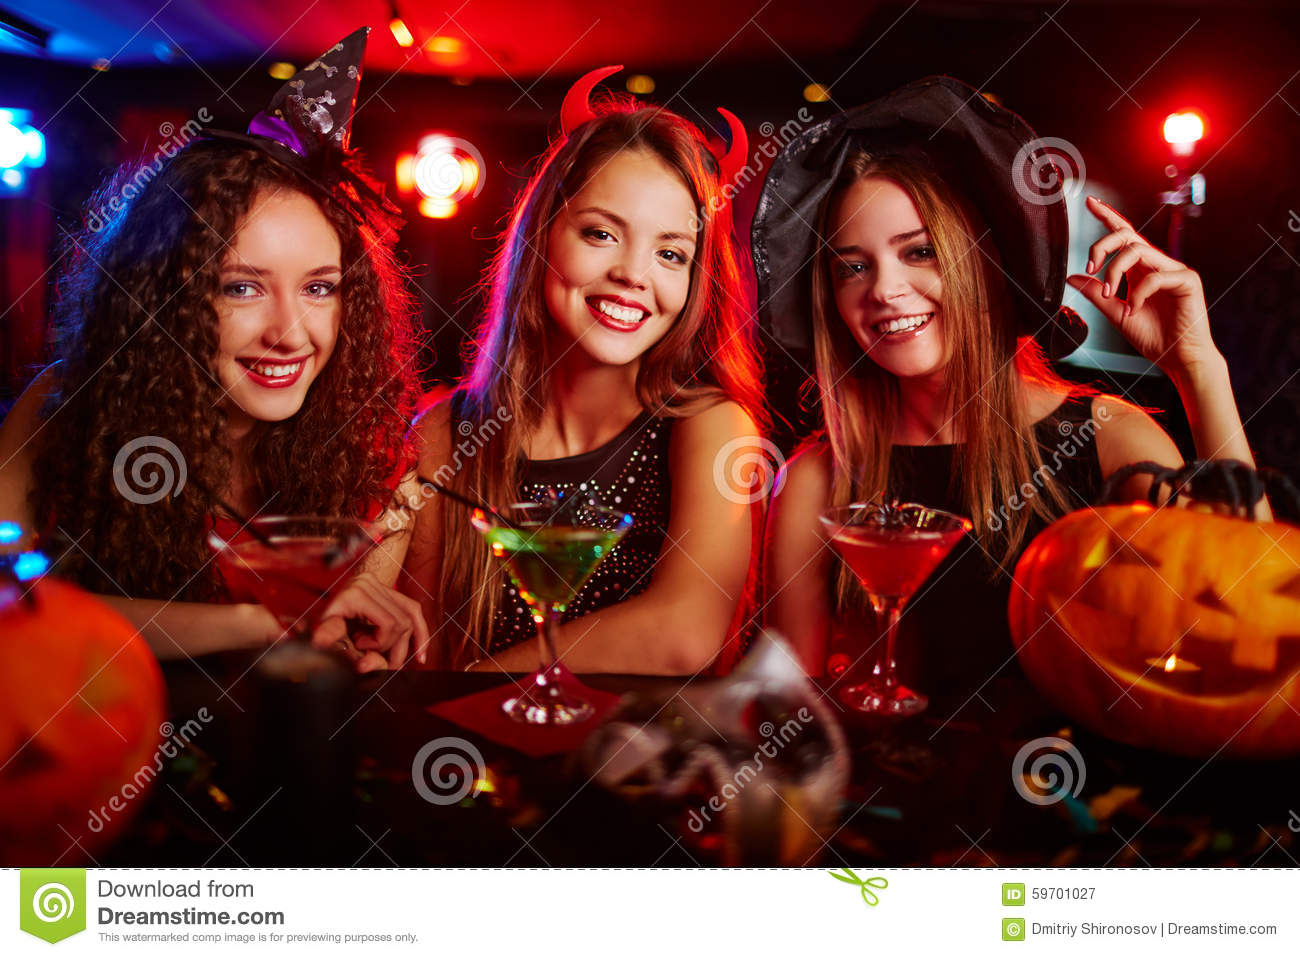 Halloween Party Stock Photo - Image: 59701027